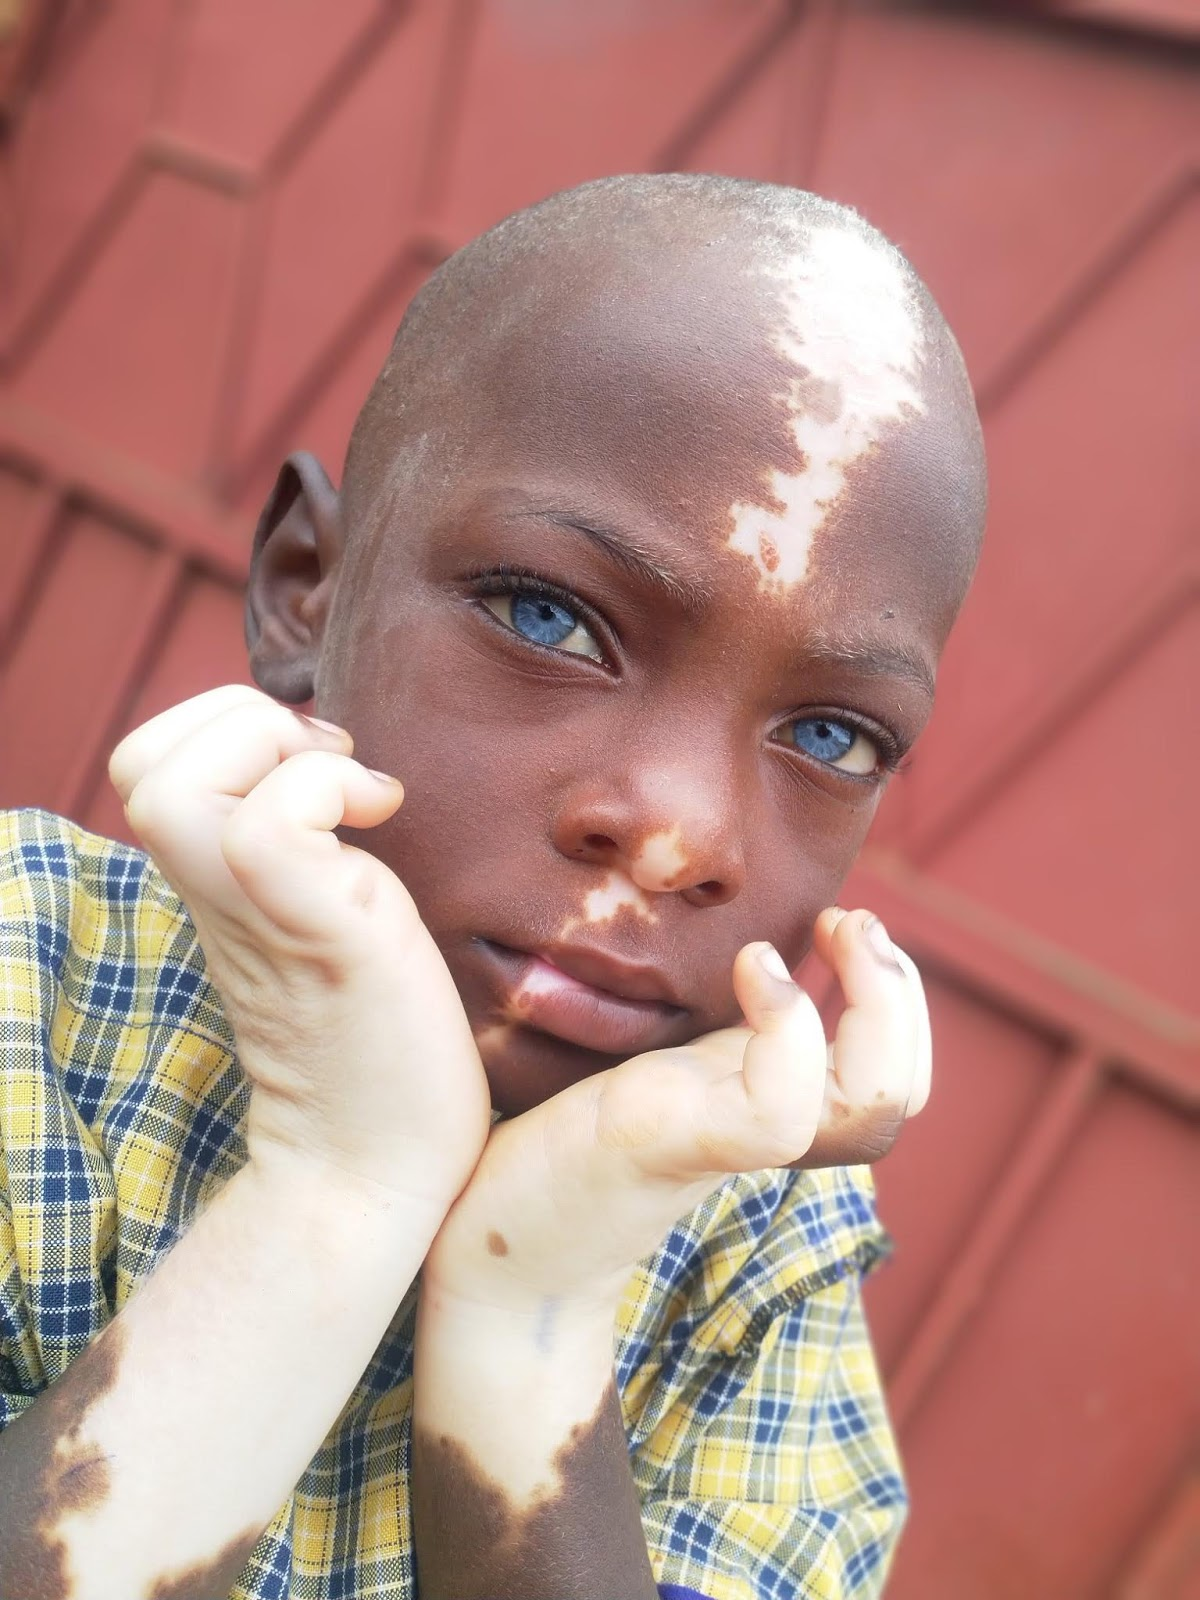 Meet charming African mute kid with blue eyes and Avatar scar